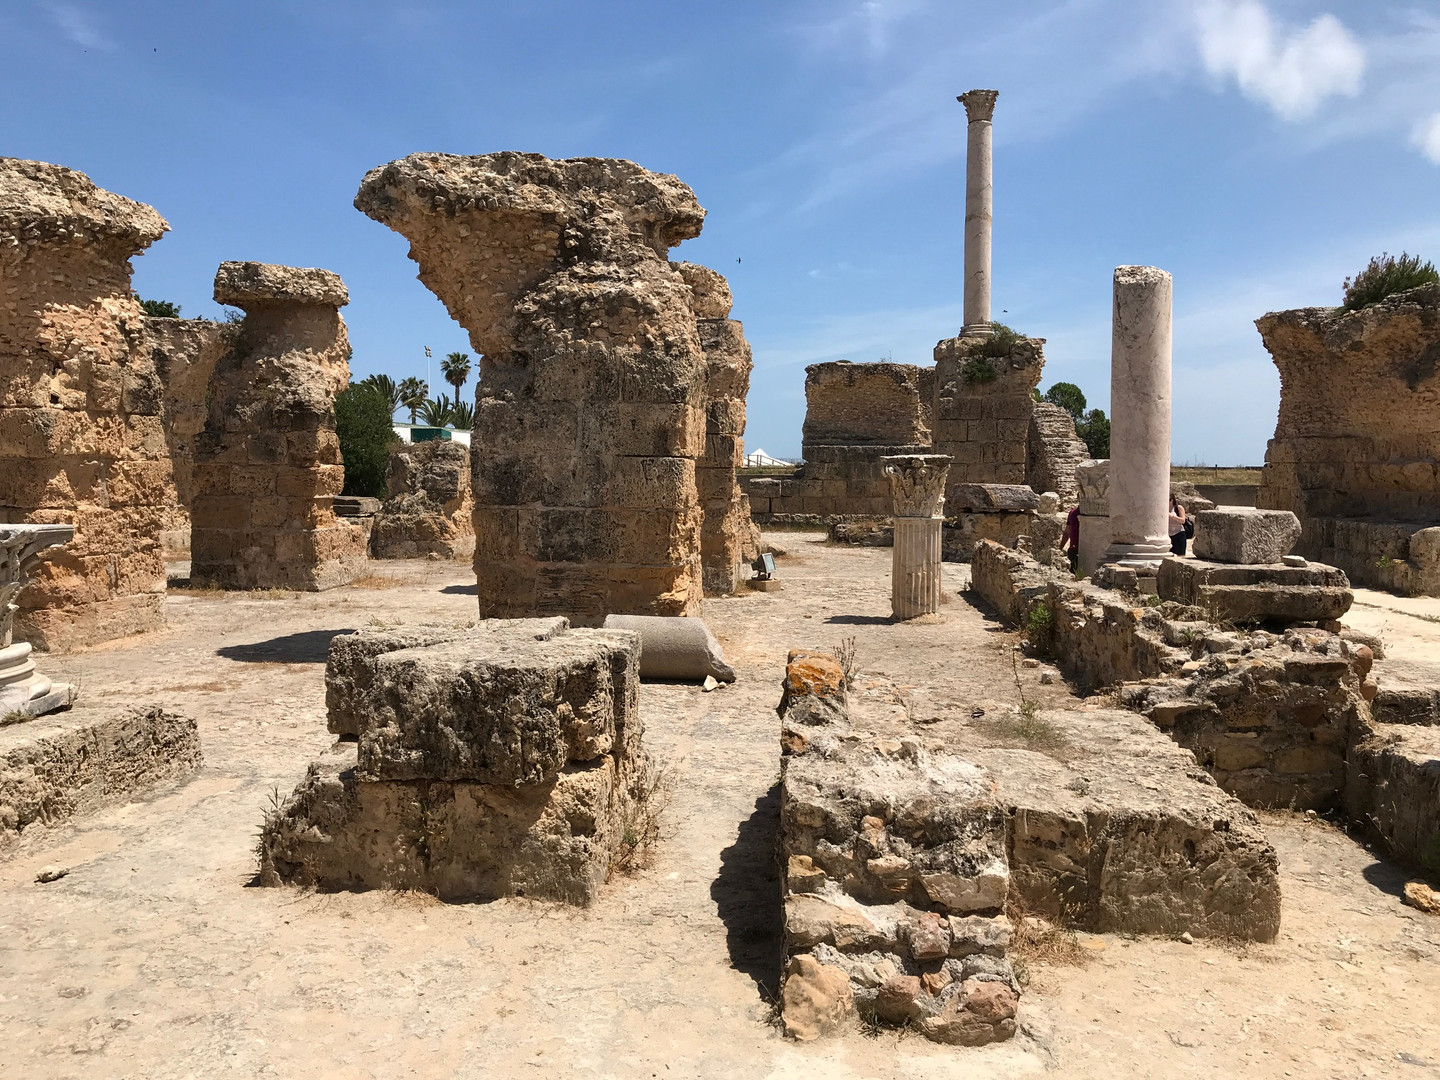 Carthage in Tunis, Capital city of Tunisia and ancient site of Carthage